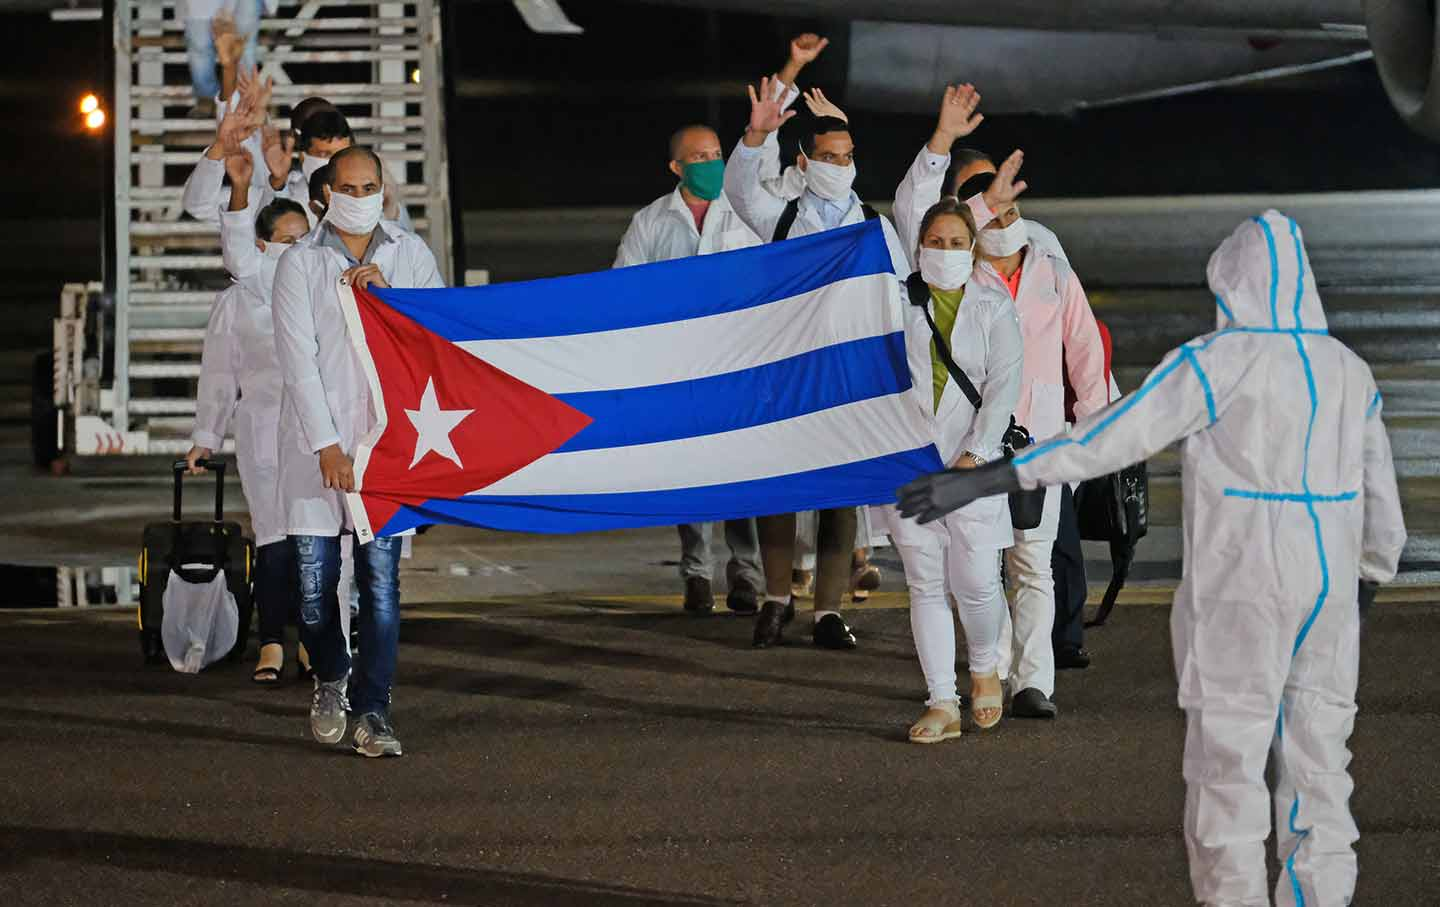 Cuba Has Sent 2,000 Doctors Overseas to Fight Covid-19